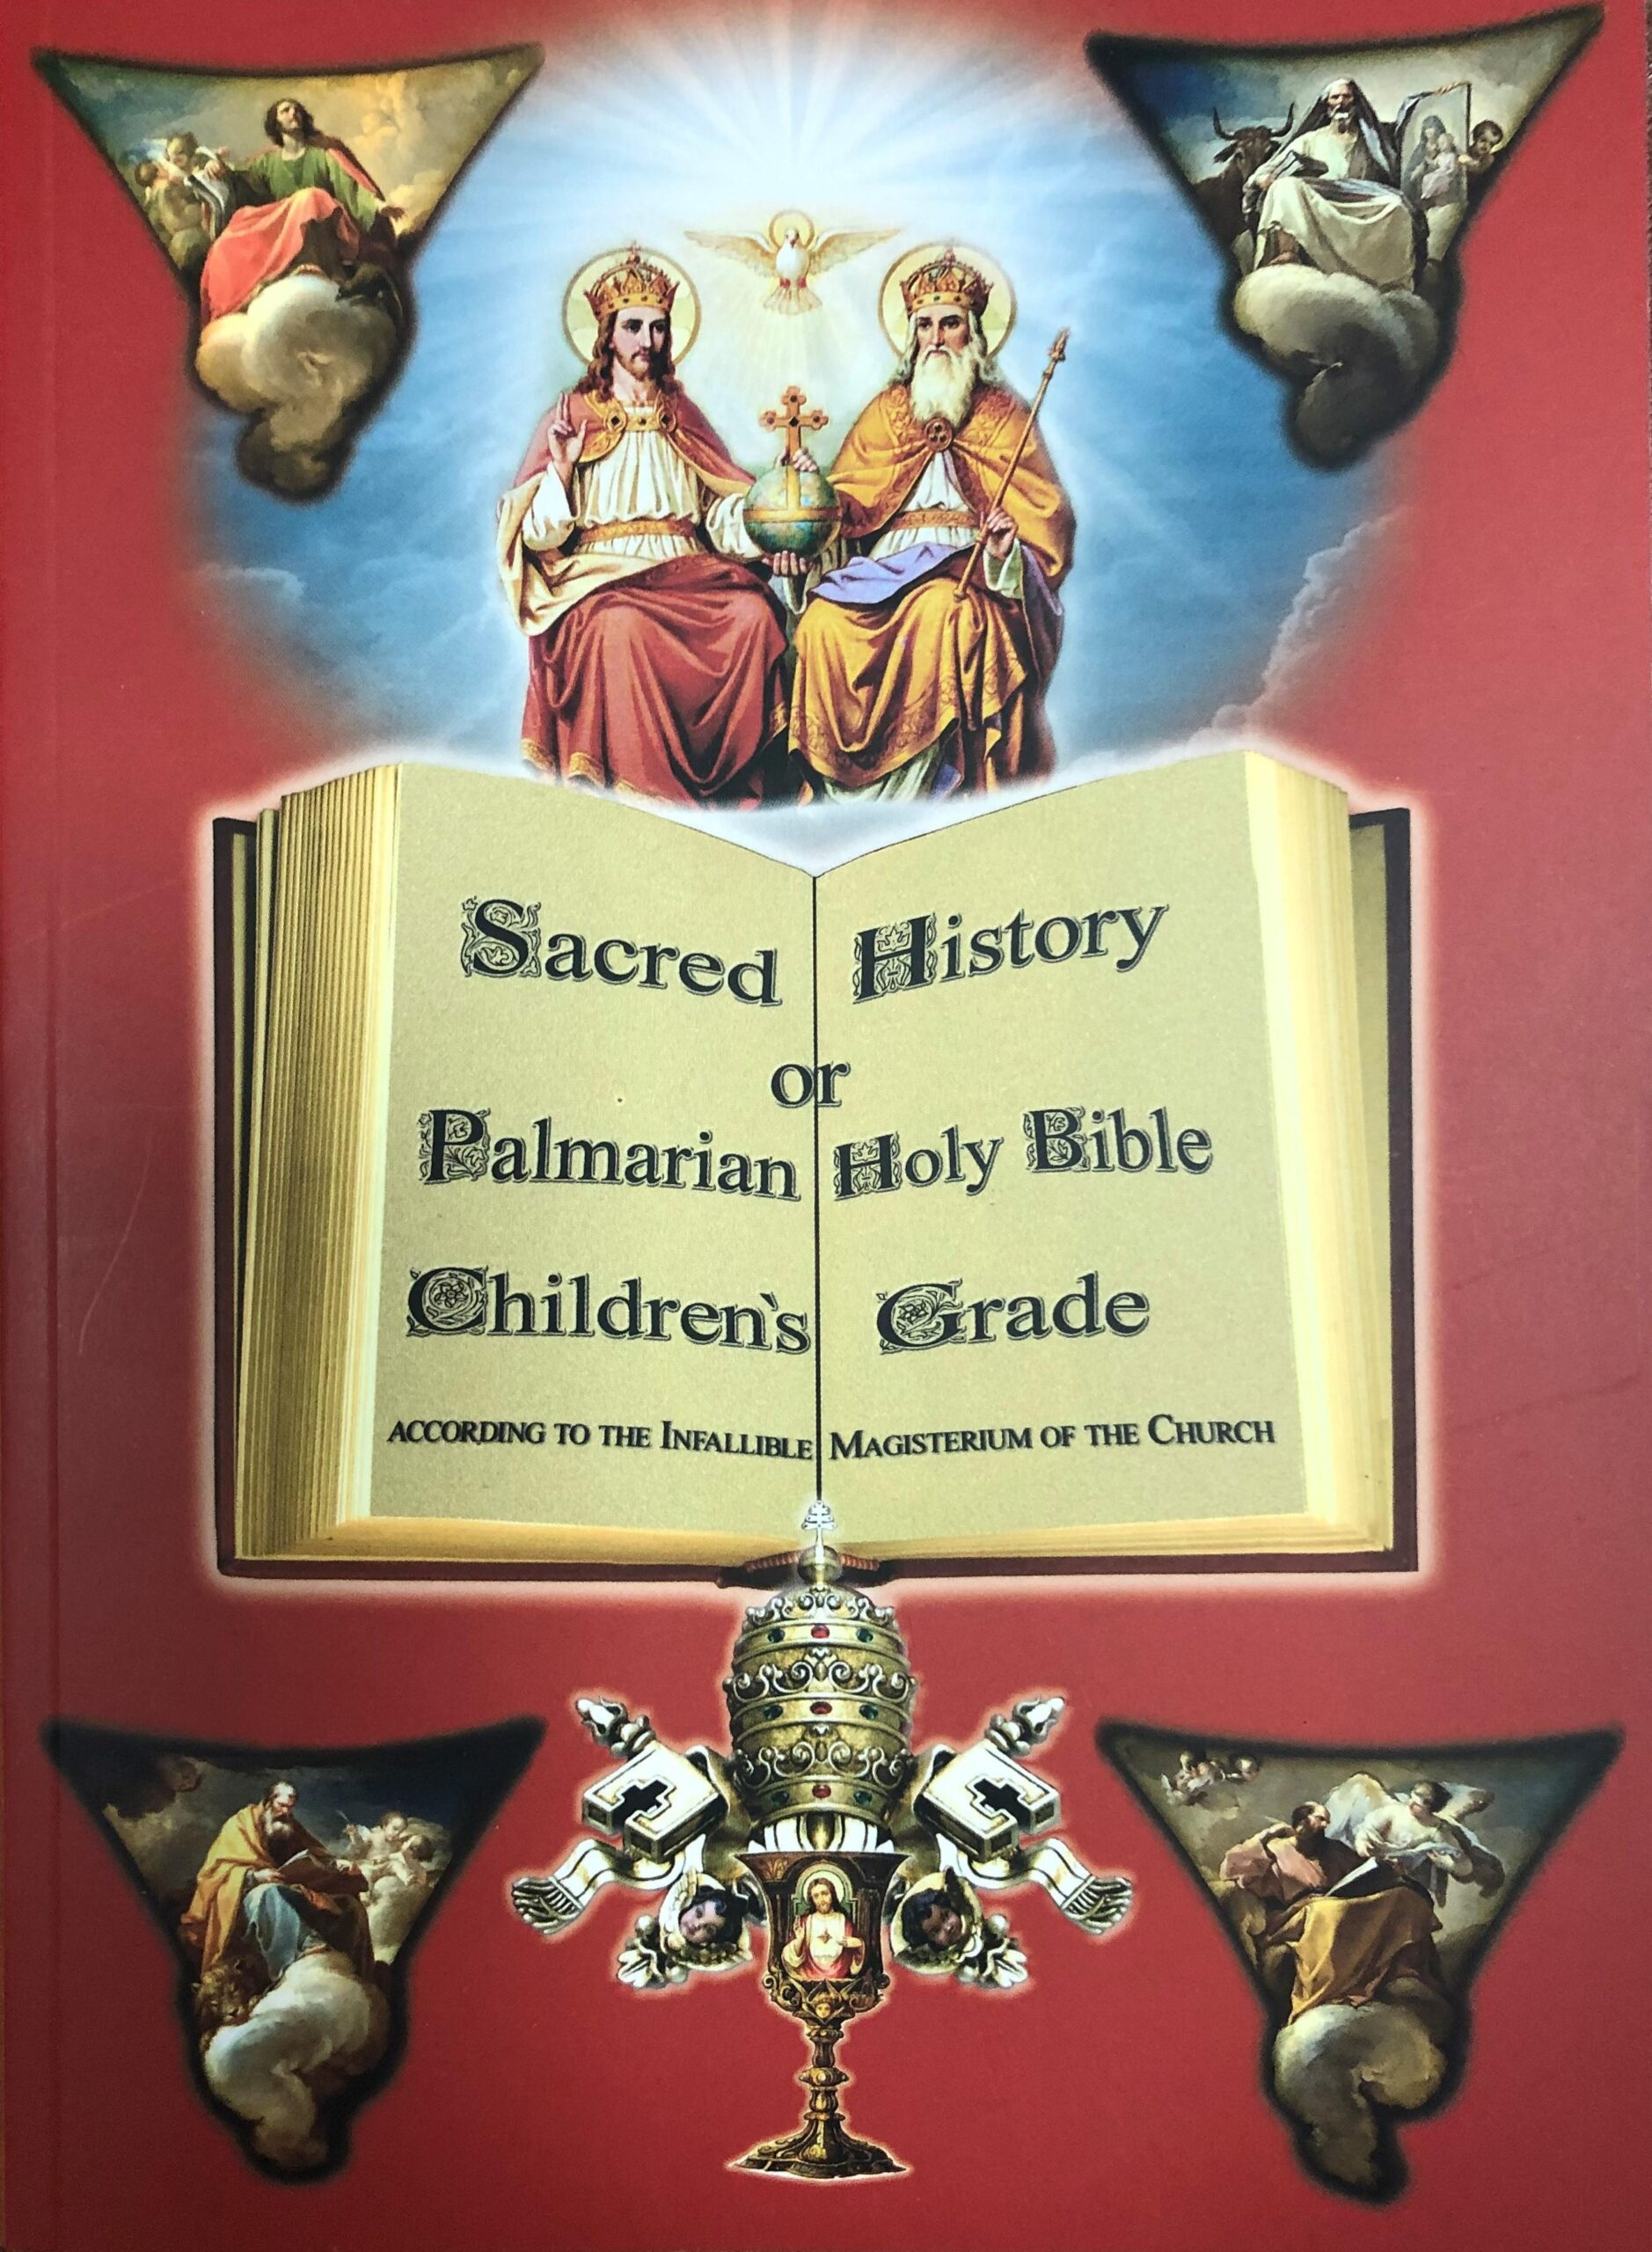 Sacred History or Palmarian Holy Bible Children's Grade<br><br>Tingnan Pa</a>